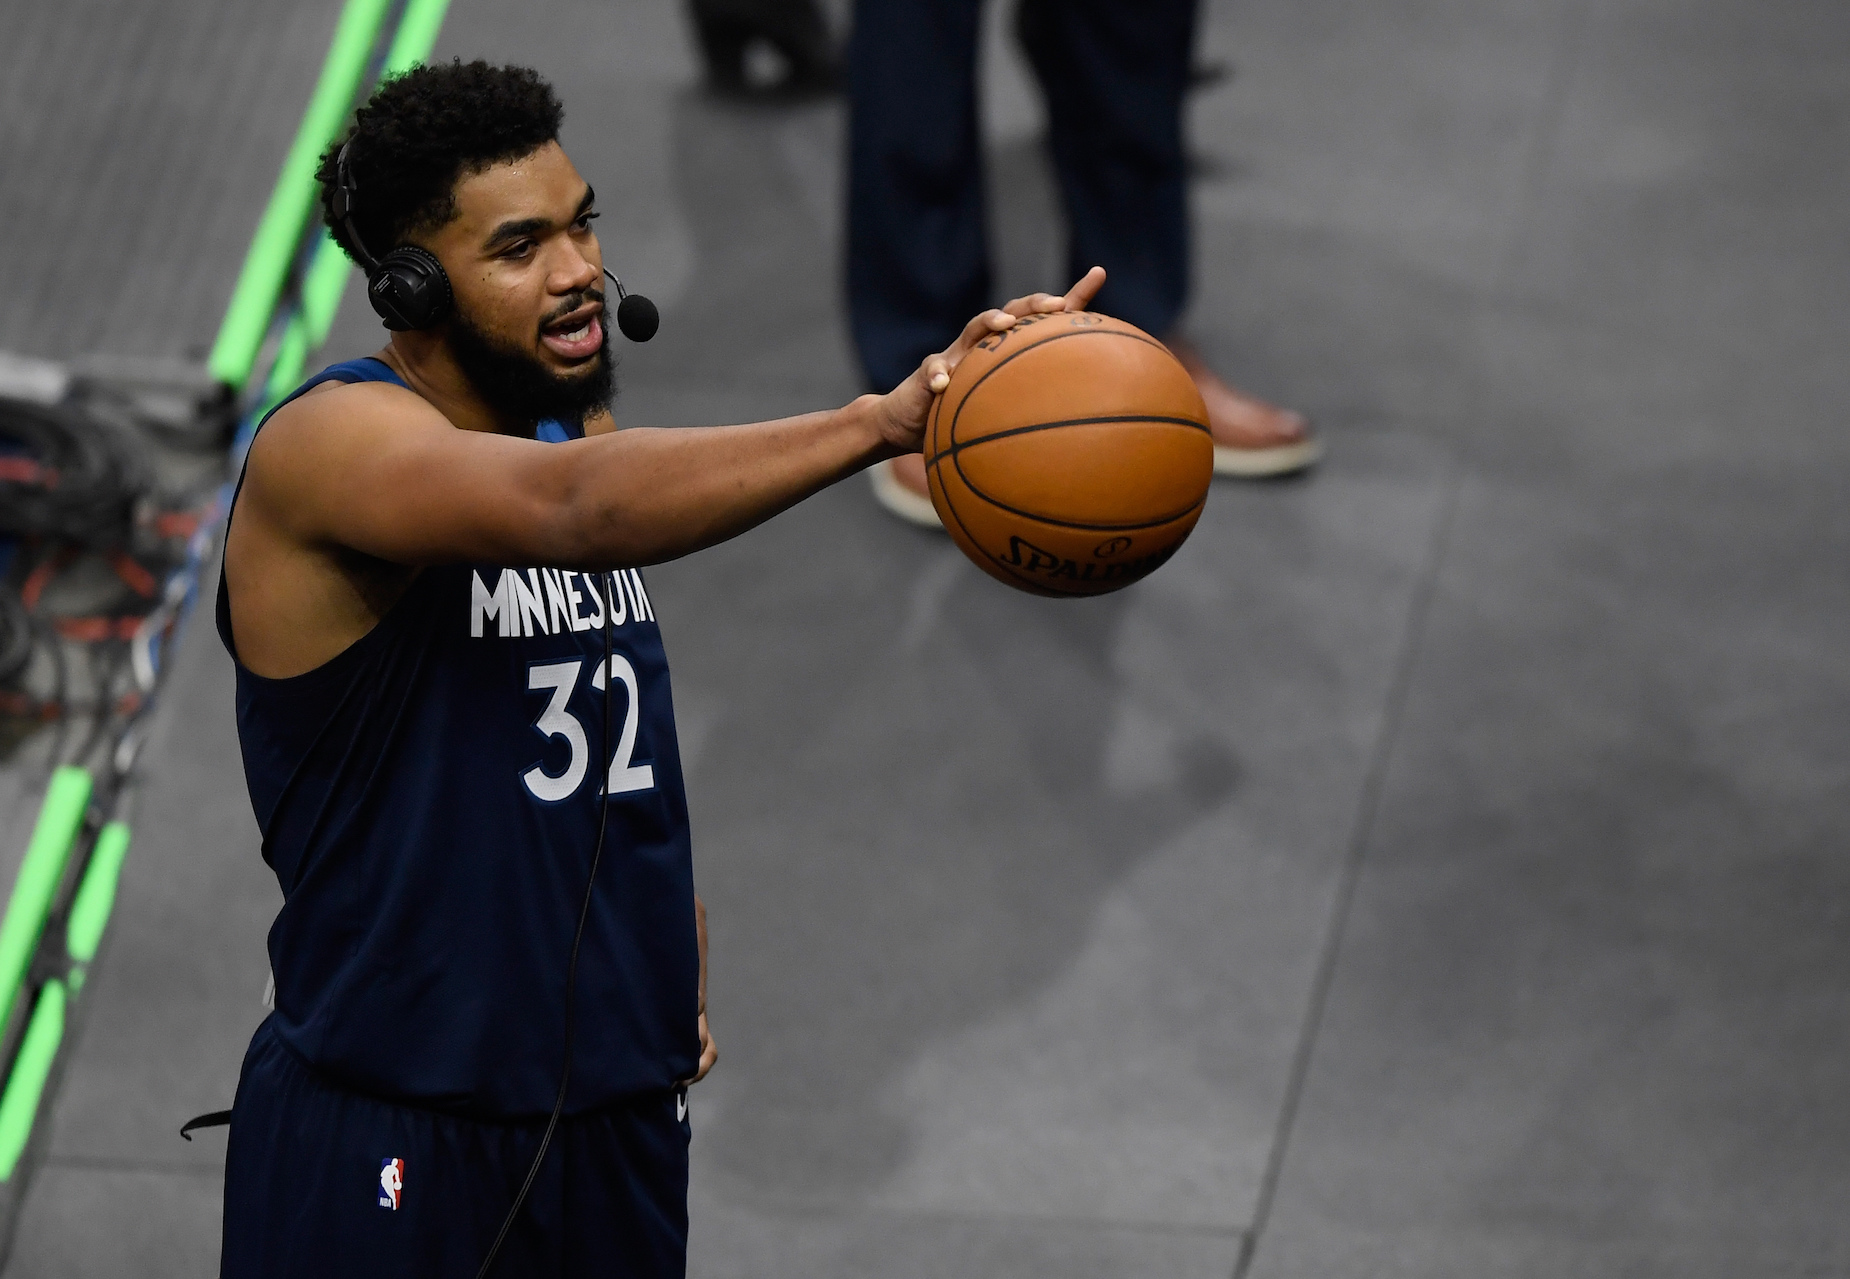 Minnesota Timberwolves big man Karl-Anthony Towns will never be the same after his tragic 2020.